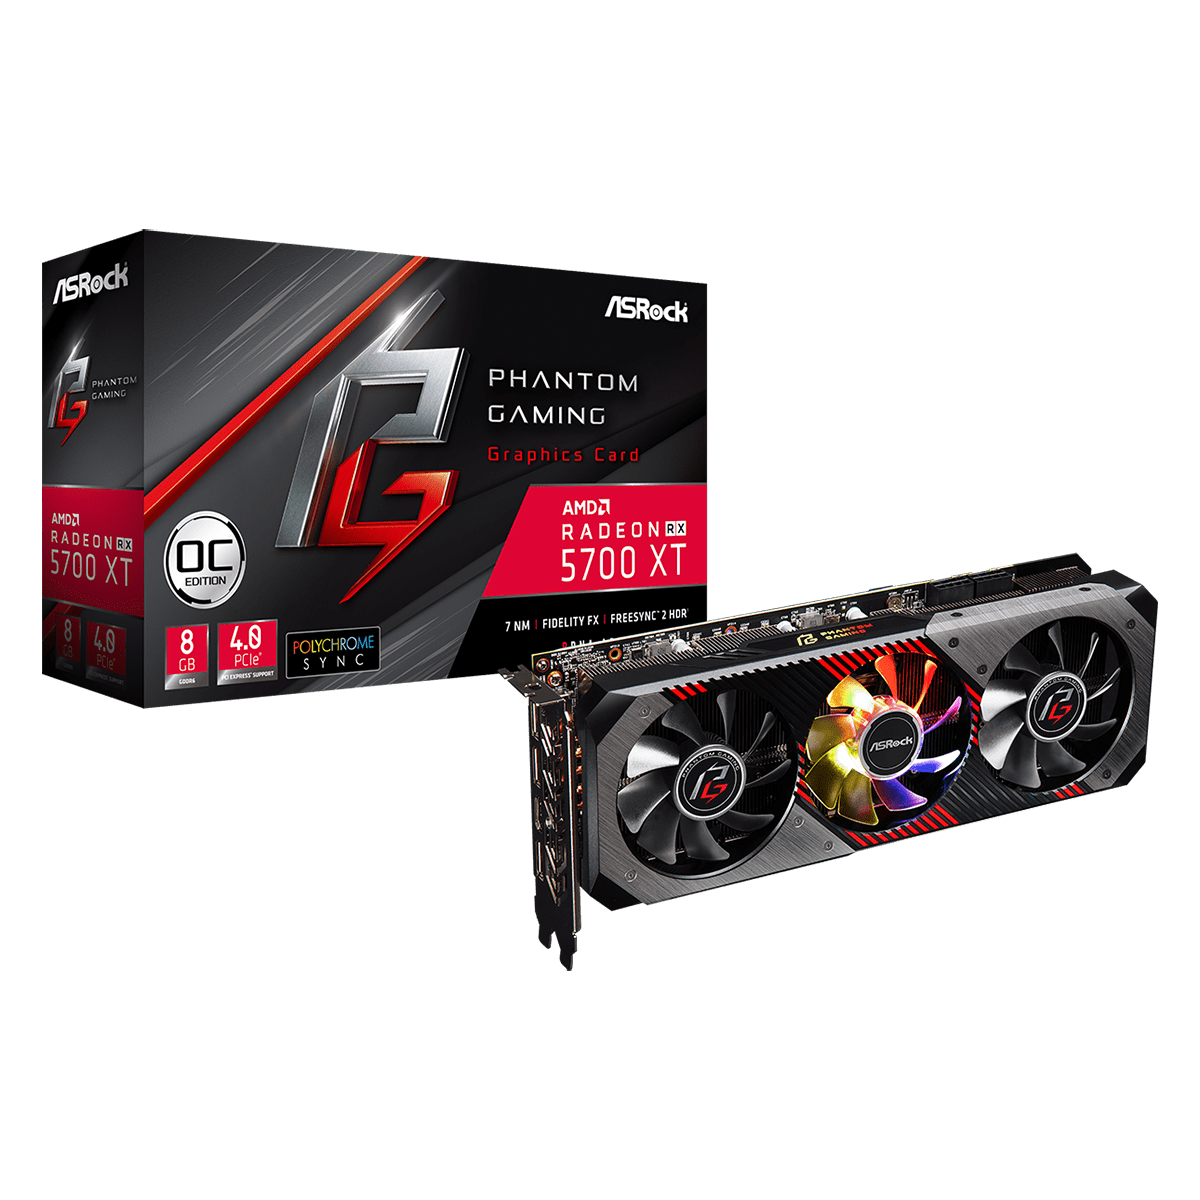 Placa de Vídeo Asrock Radeon Navi RX 5700XT Phantom Gaming D 8G OC, Triple Fan, 8GB GDDR6, 256Bit, 90-GA1JZZ-00UANF